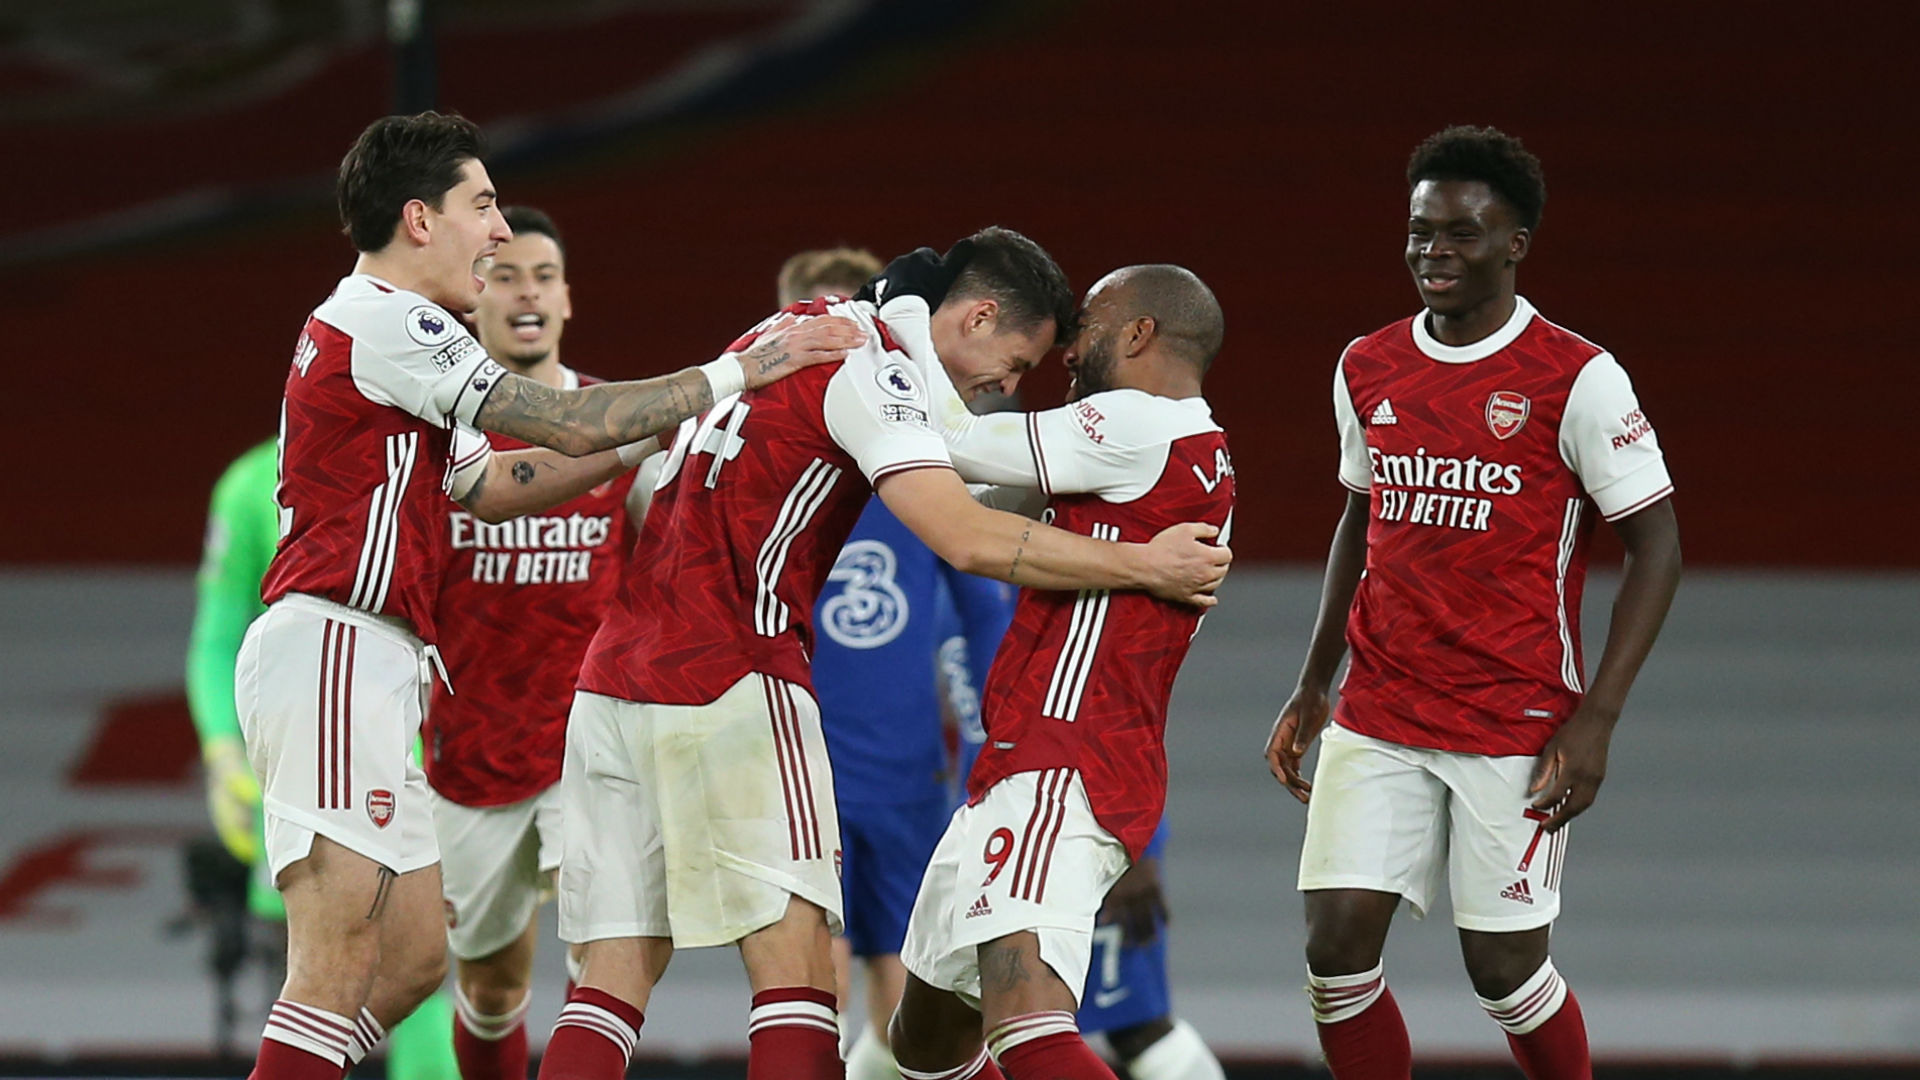 Arsenal 3-1 Chelsea: Jorginho penalty miss helps Arteta clinch vital win